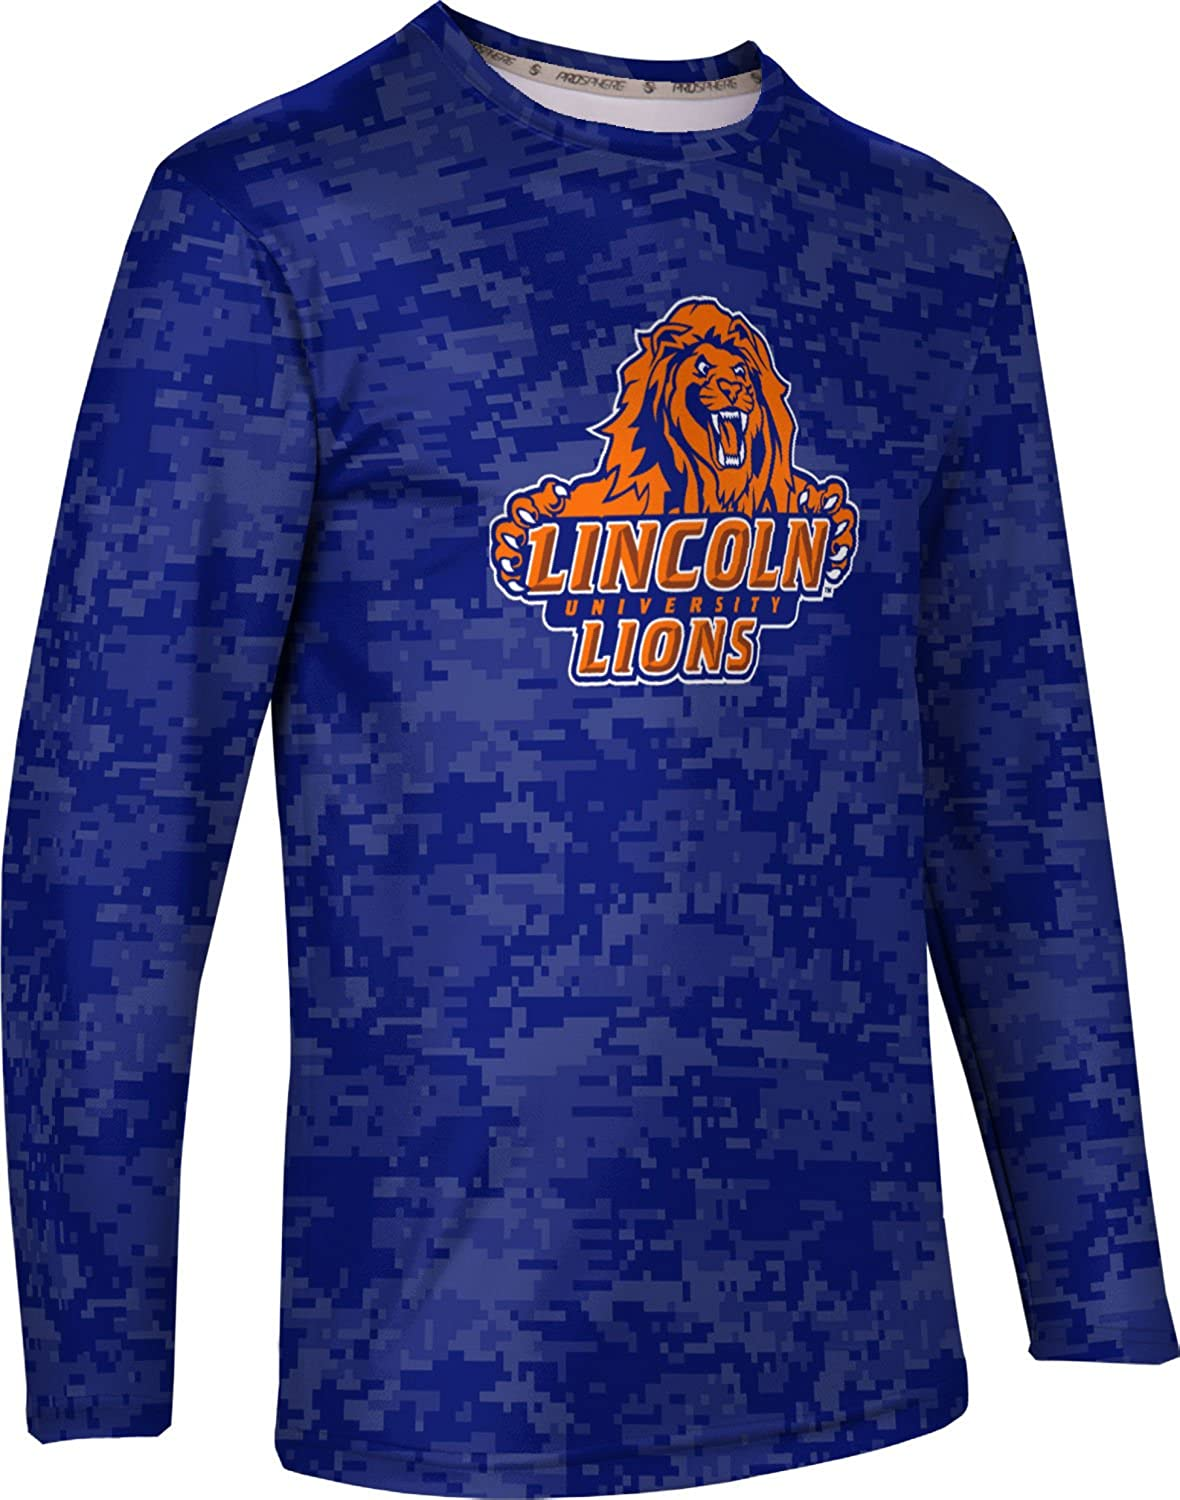 Mens Long Sleeve Tee Zoom PA ProSphere Lincoln University